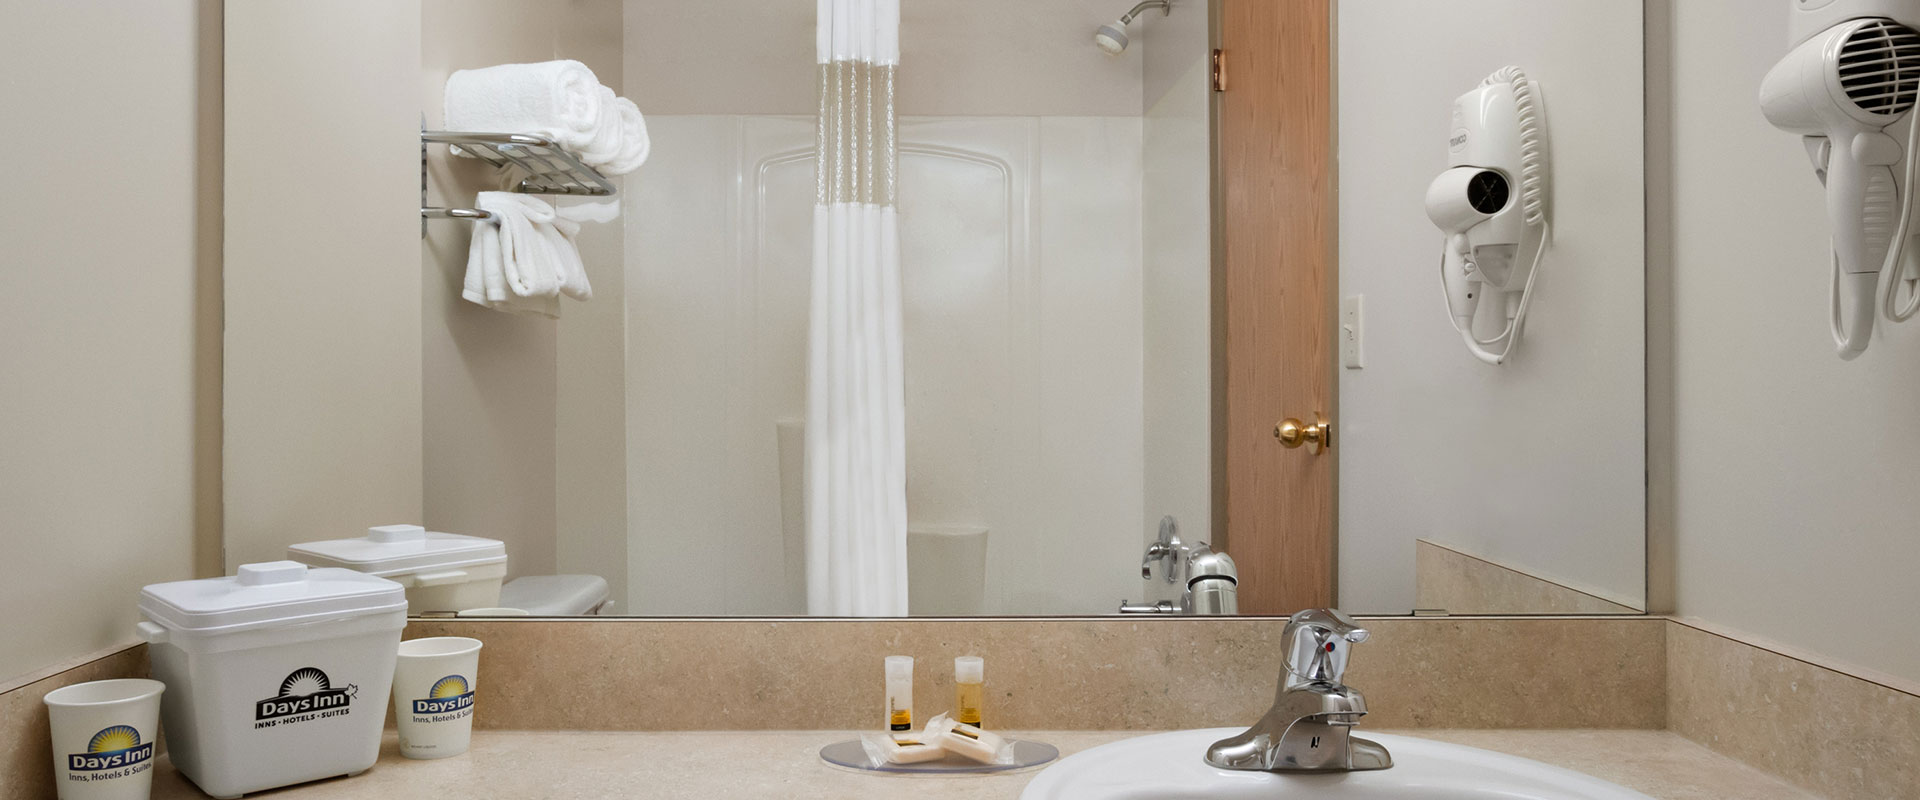 Large view of a guest bathroom at Days Inn Red Deer, Alberta with large mirror over the sink and a shower and shower curtain.